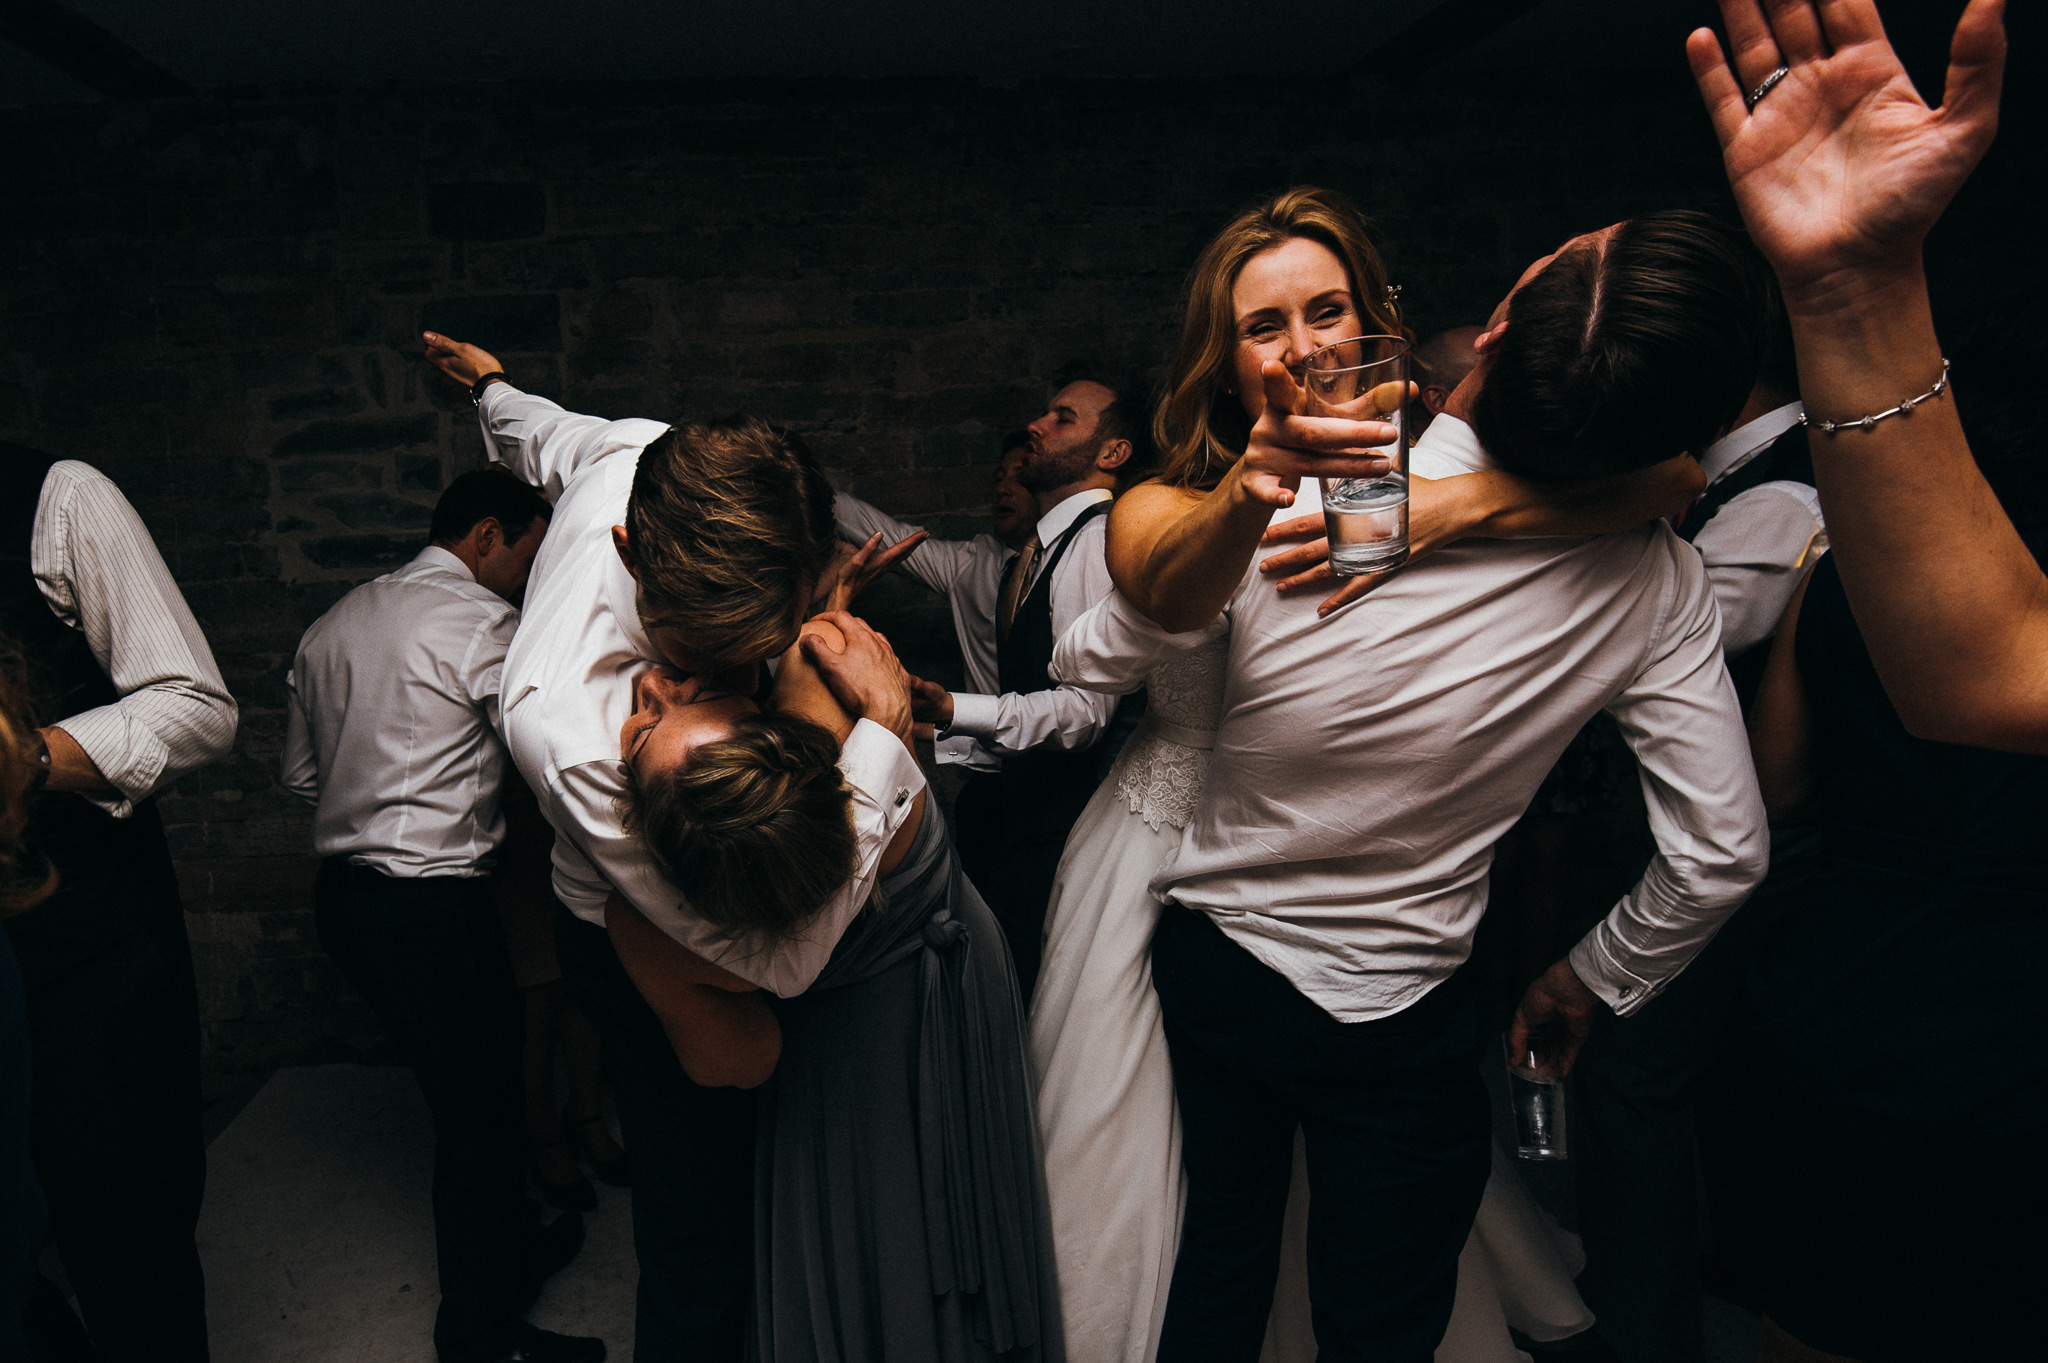 lots of dance floor action at Almonry barn wedding